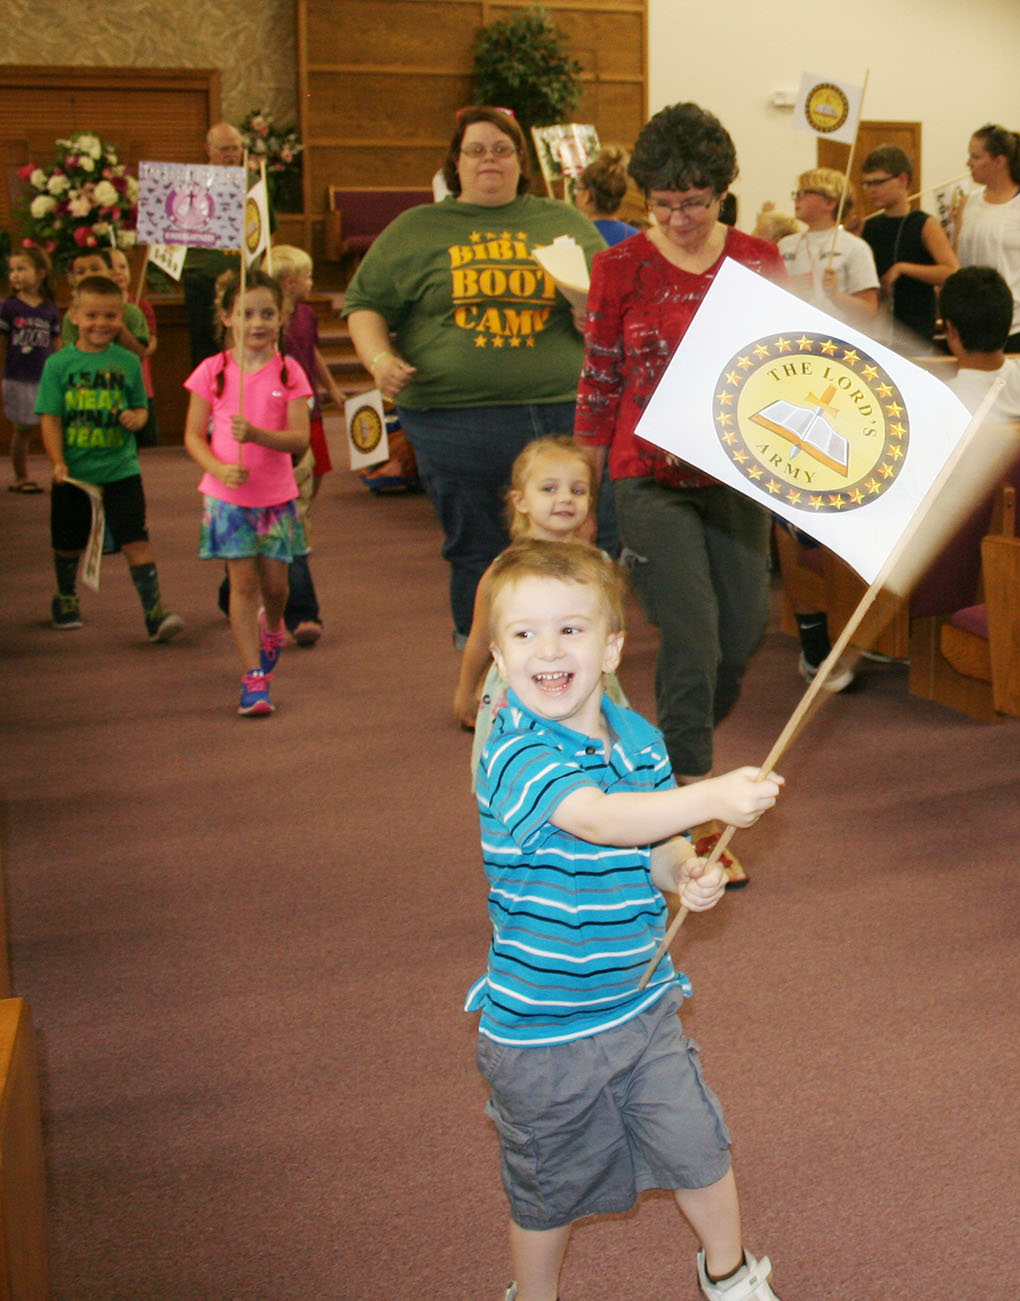 A child carries a flag as part of a Vacation Bible School at the Augusta Church of Christ in Kansas.